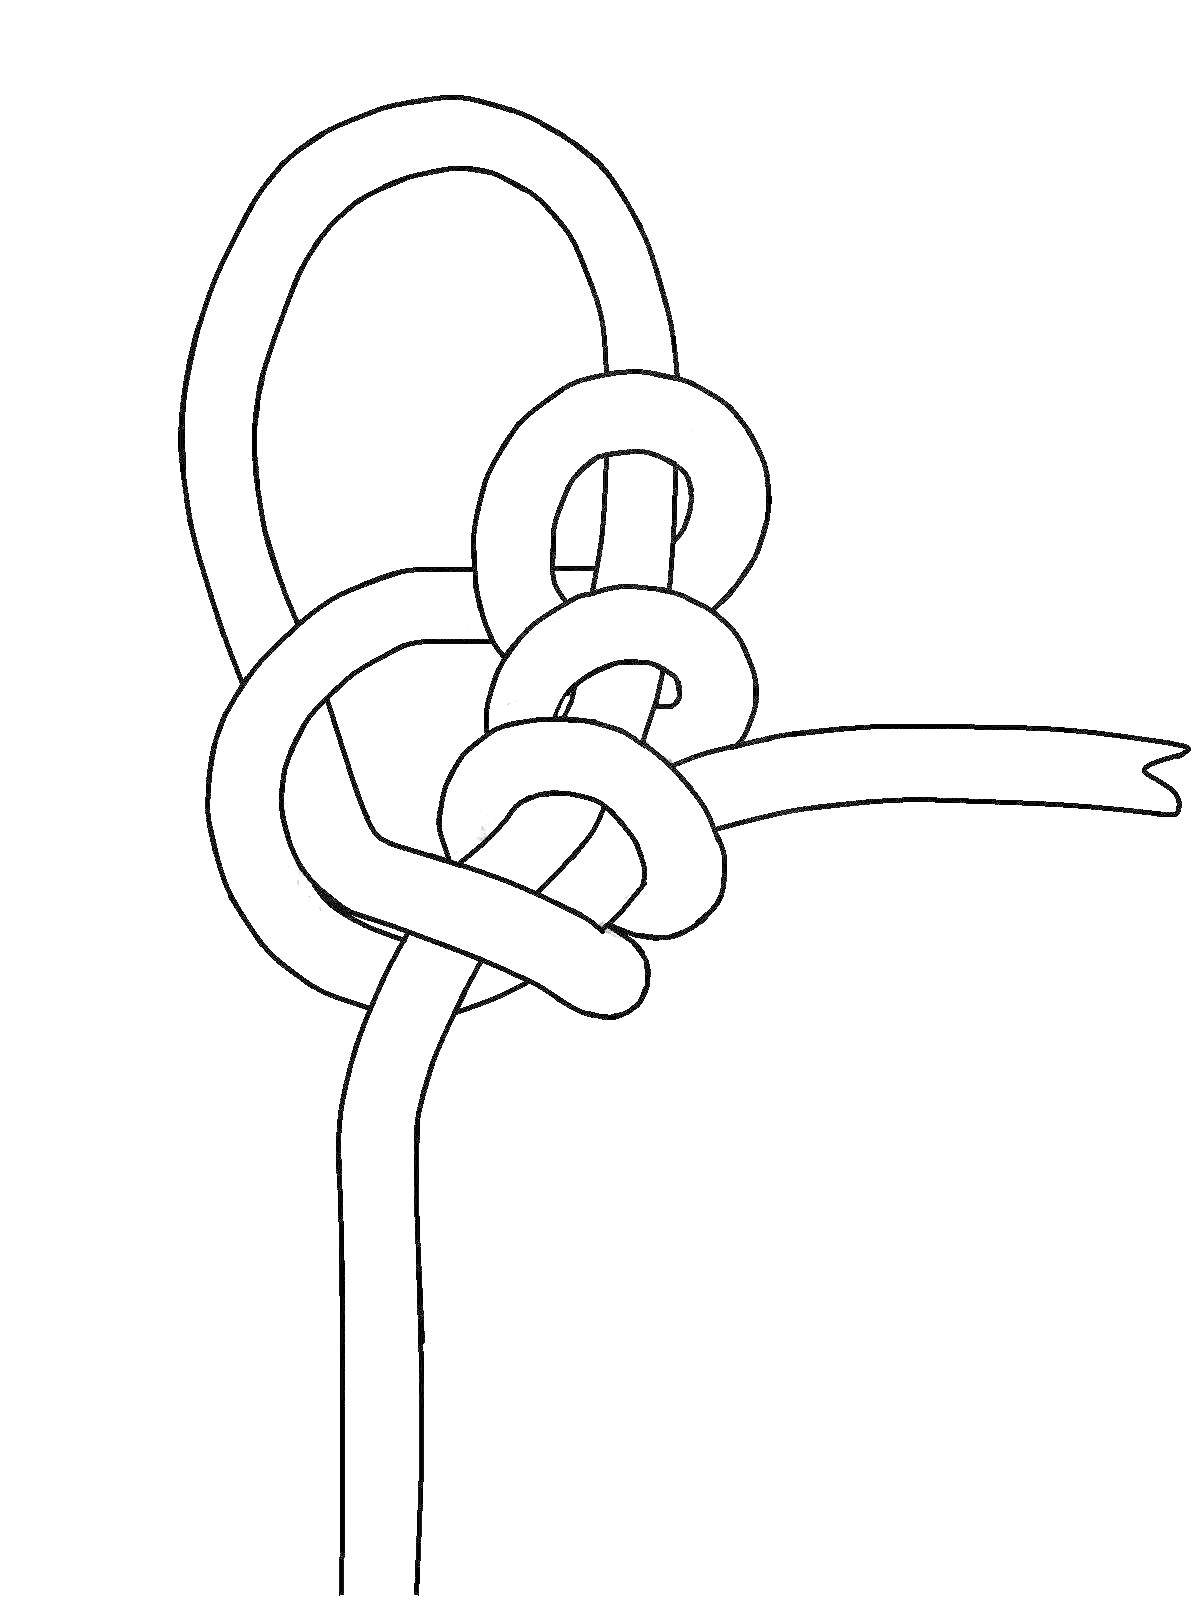 New Approaches with Knot Tying: How to Electronically Draw